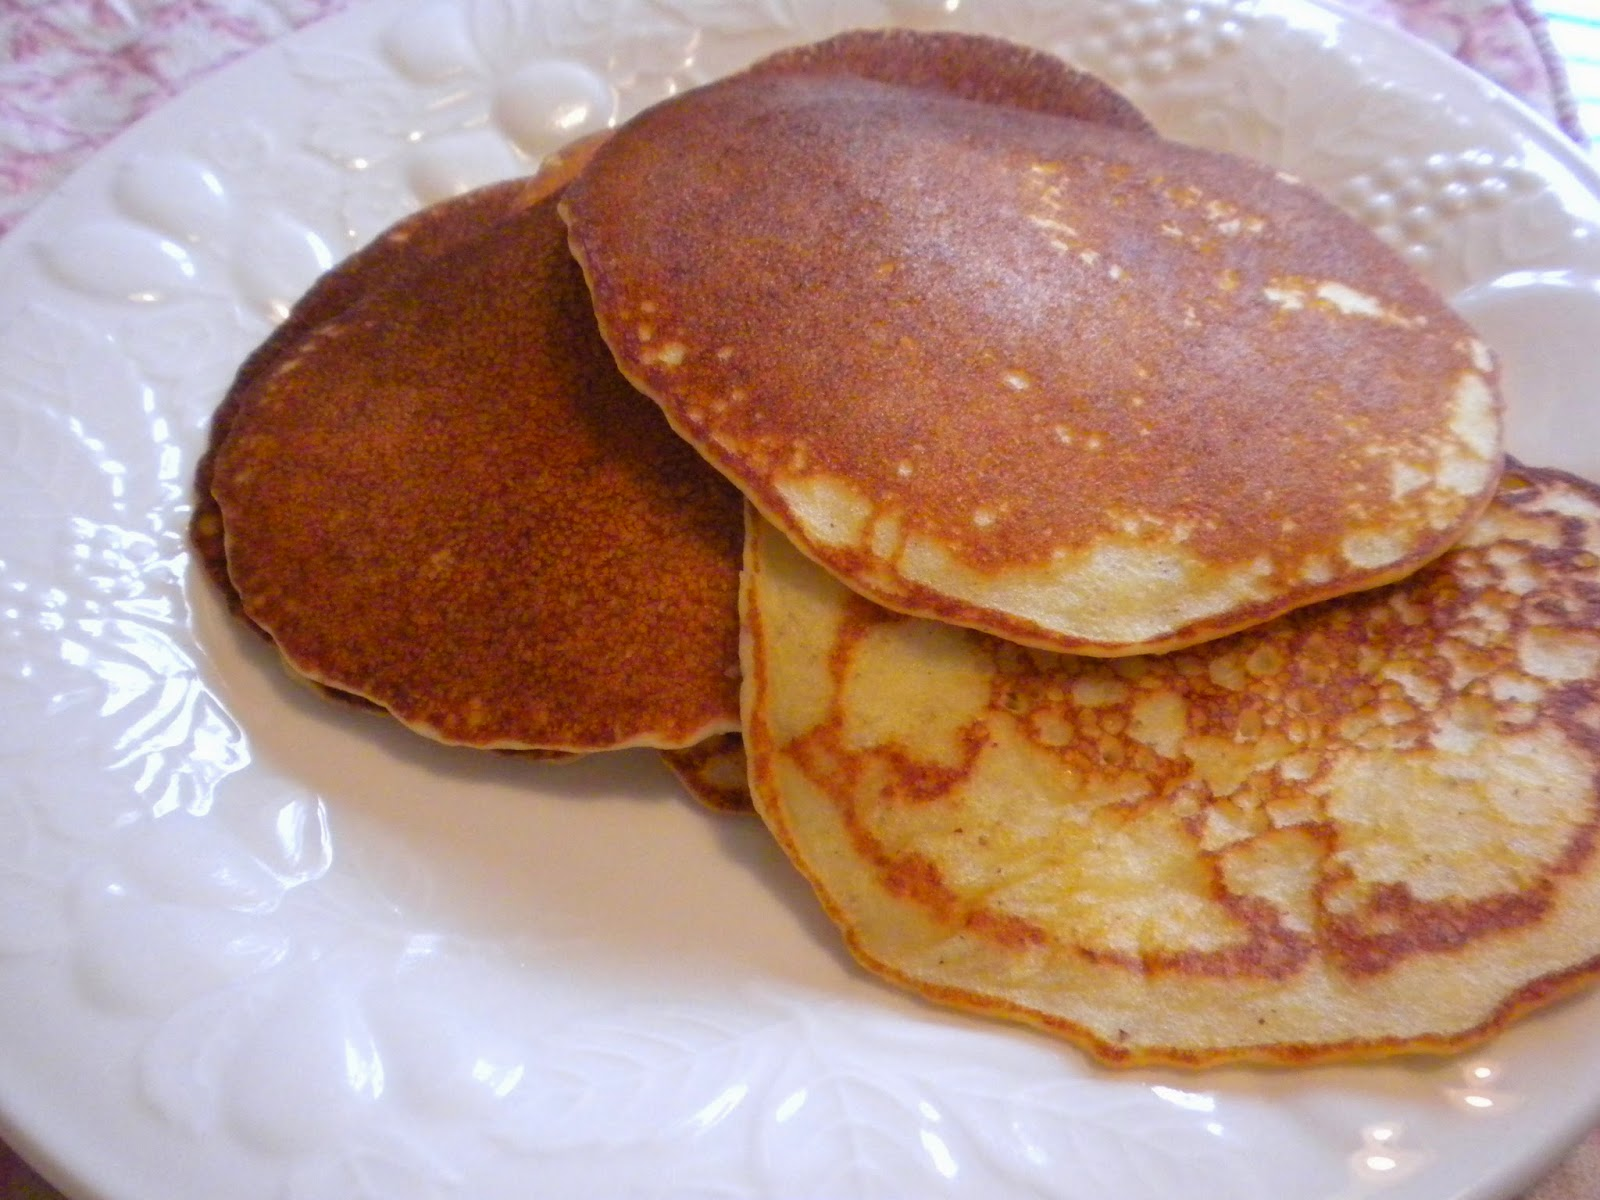 Pamela's Pancake and Baking Mix - Product Review by Substance of Living